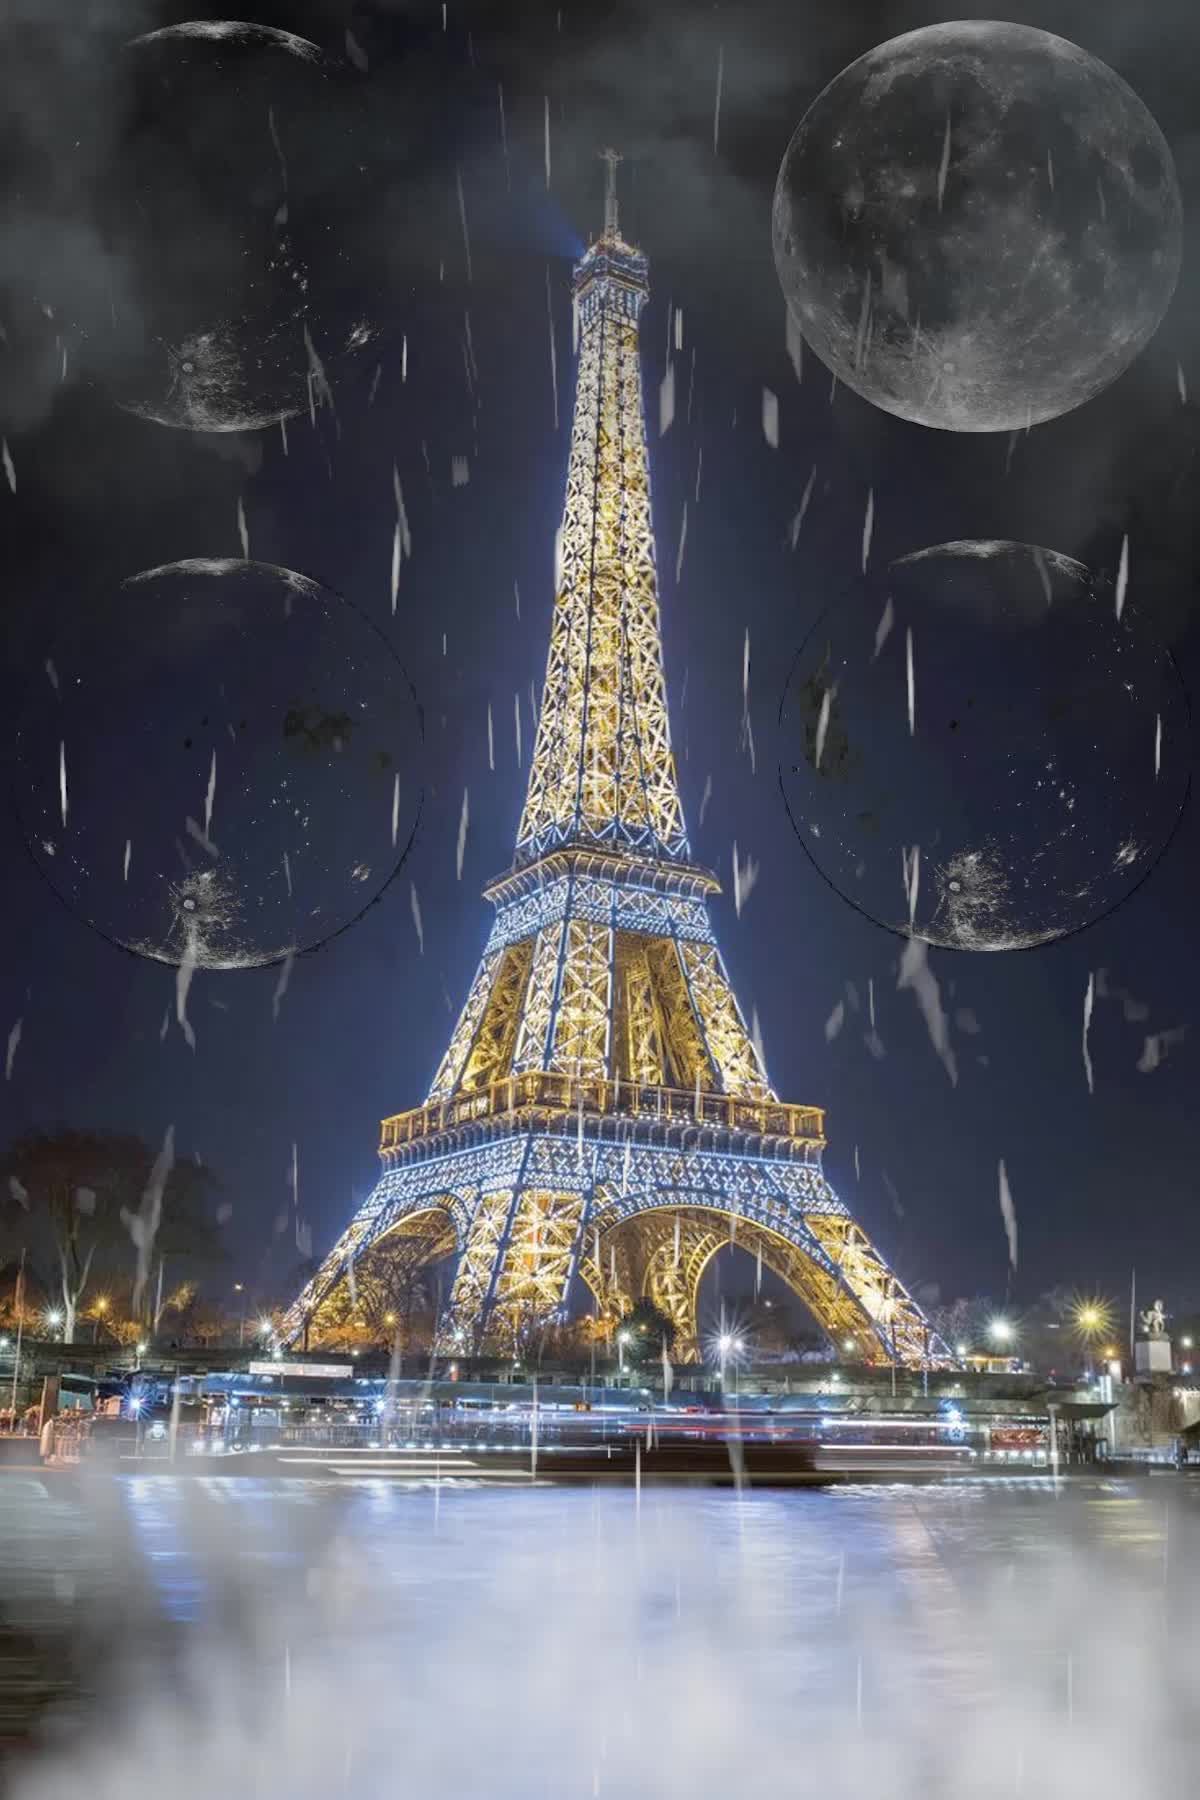 animation, audio, birds, crazy, france, insanewayne, lightning, paris, rain, raining, storm, the eiffel tower, weather, weird, The Eiffel Tower [Audio] GIFs